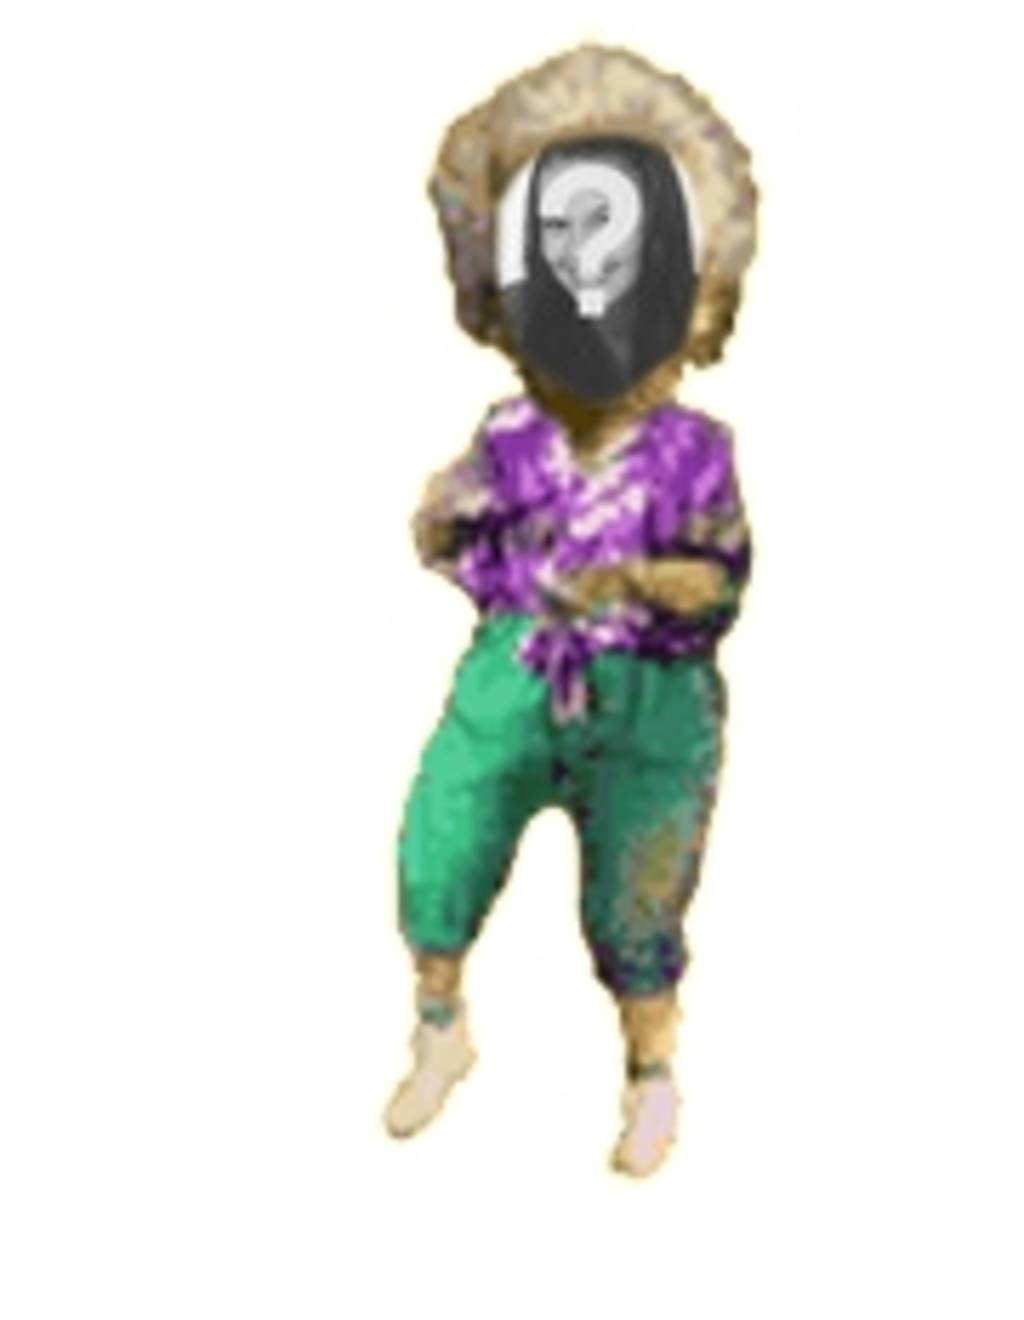 Animation of older woman dancing personalized with your photo